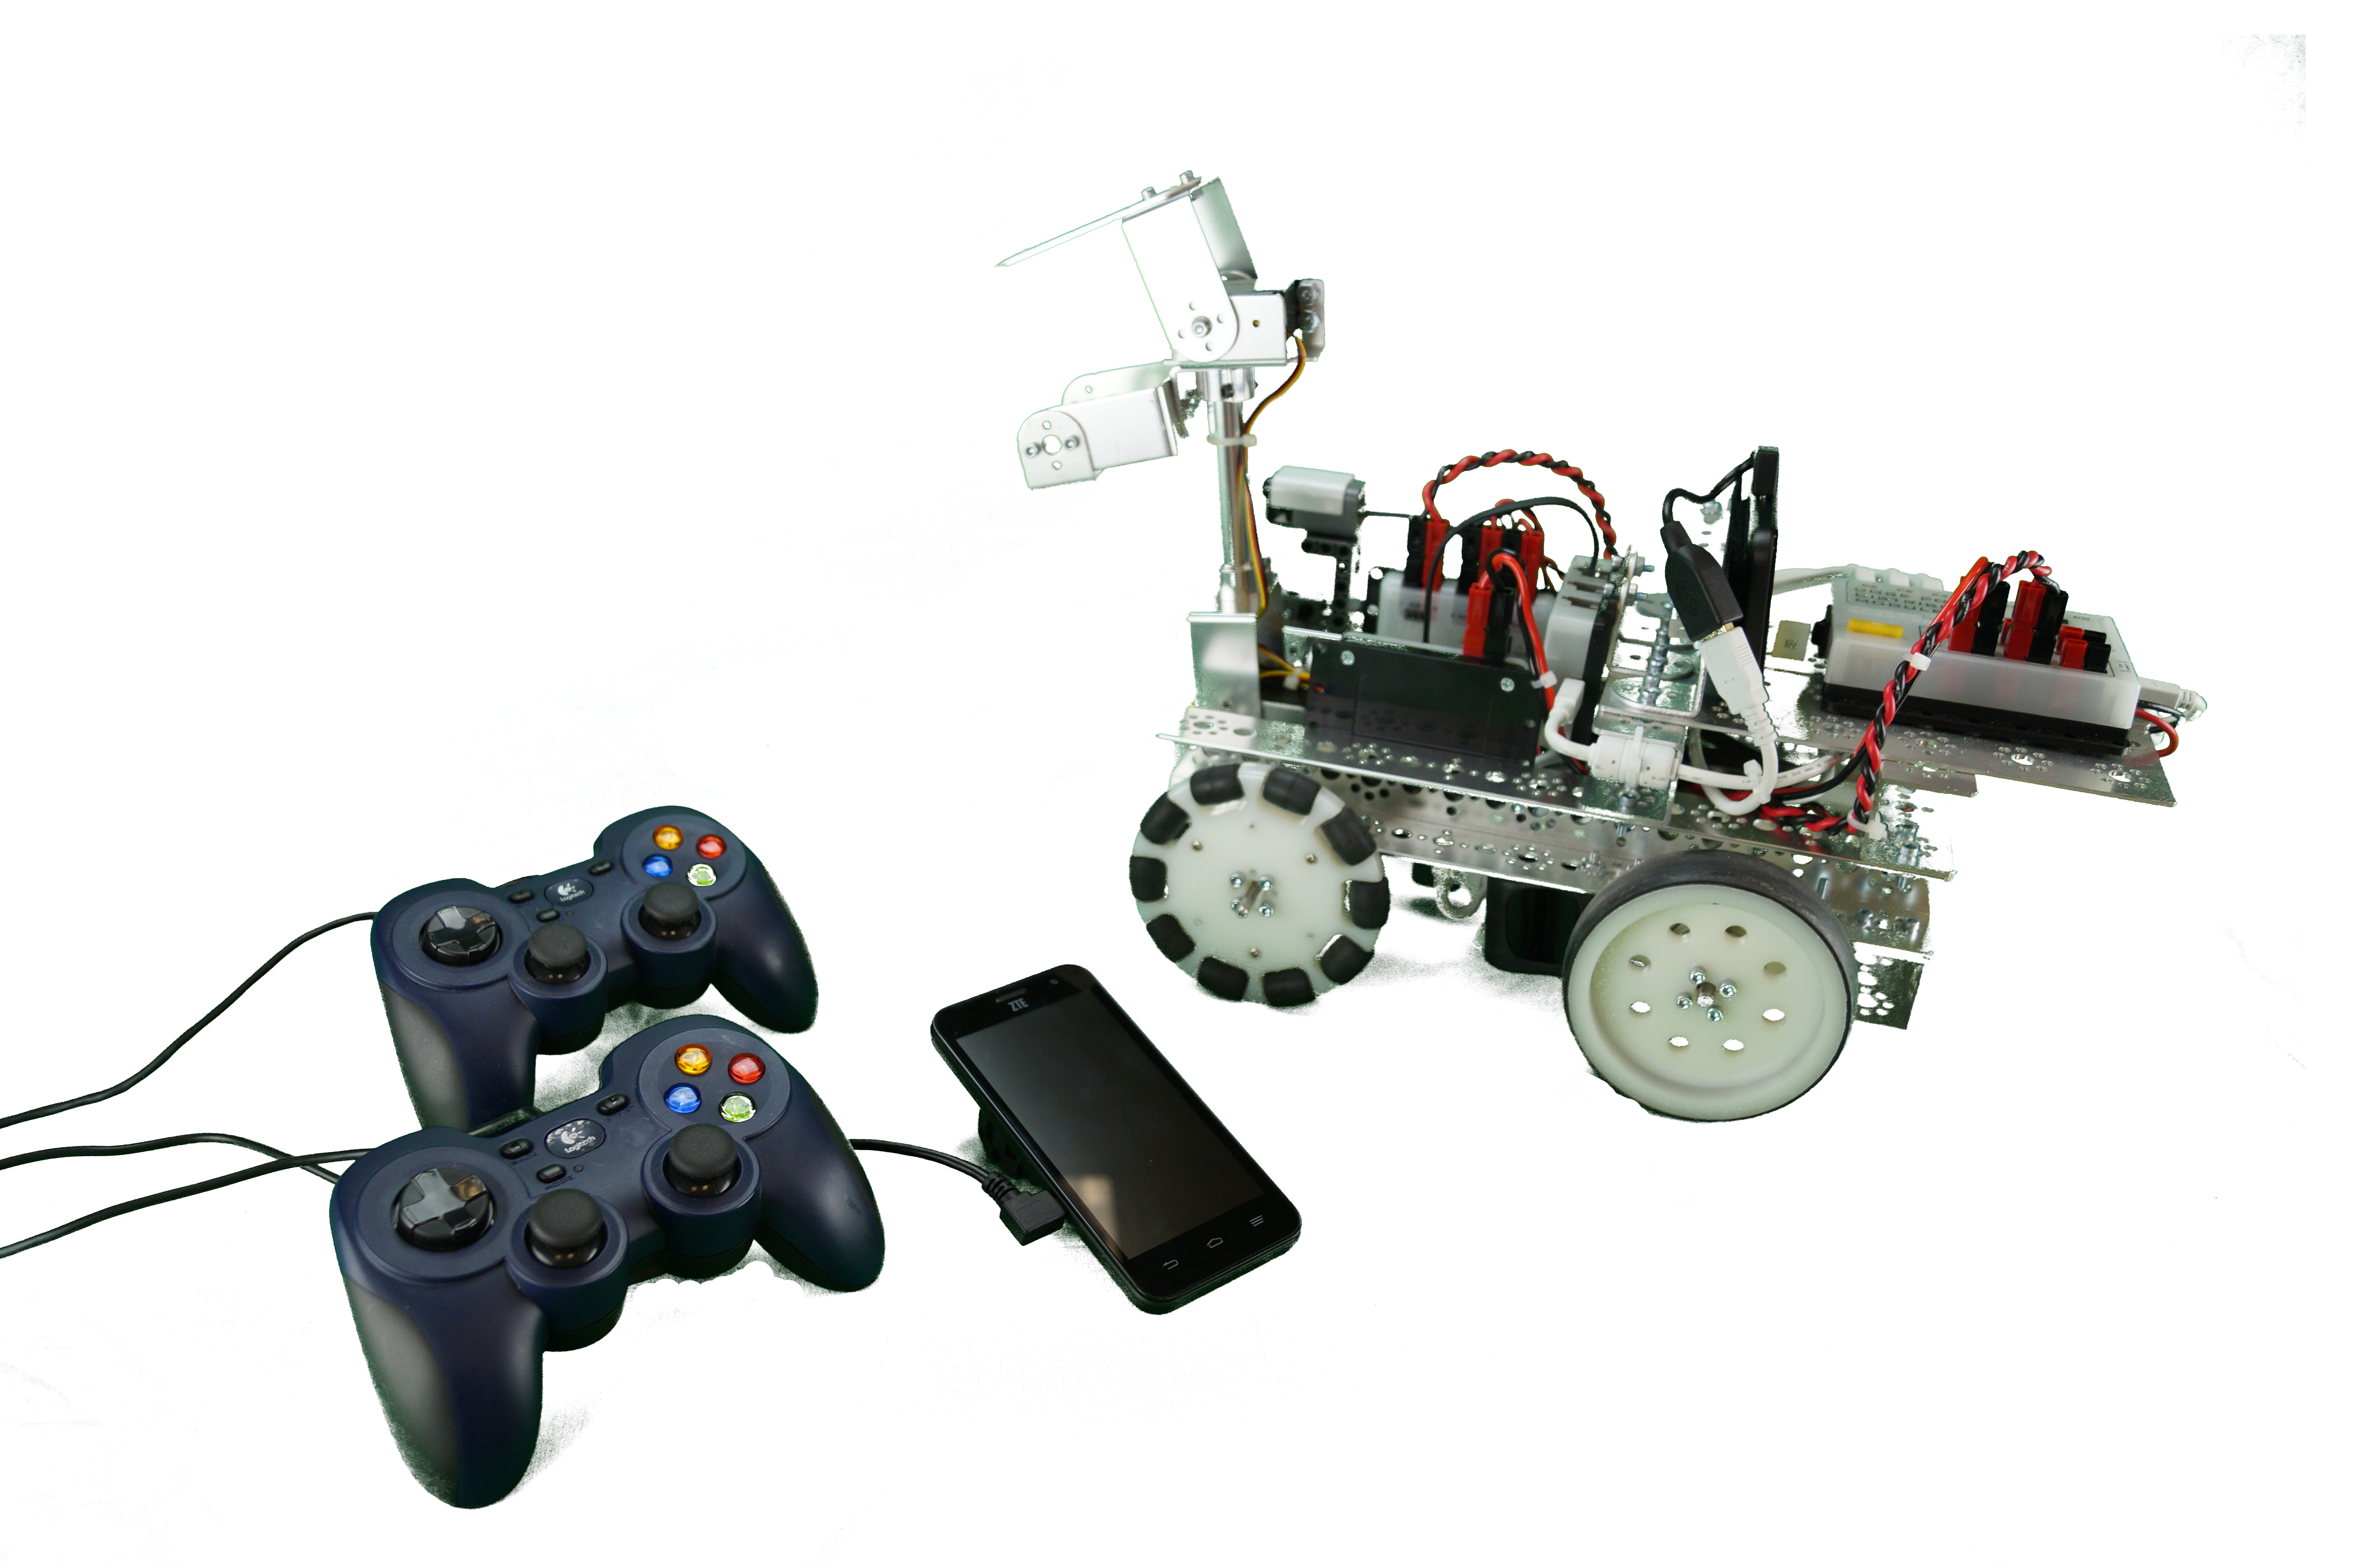 FIRST Tech Challenge Robotics Kit